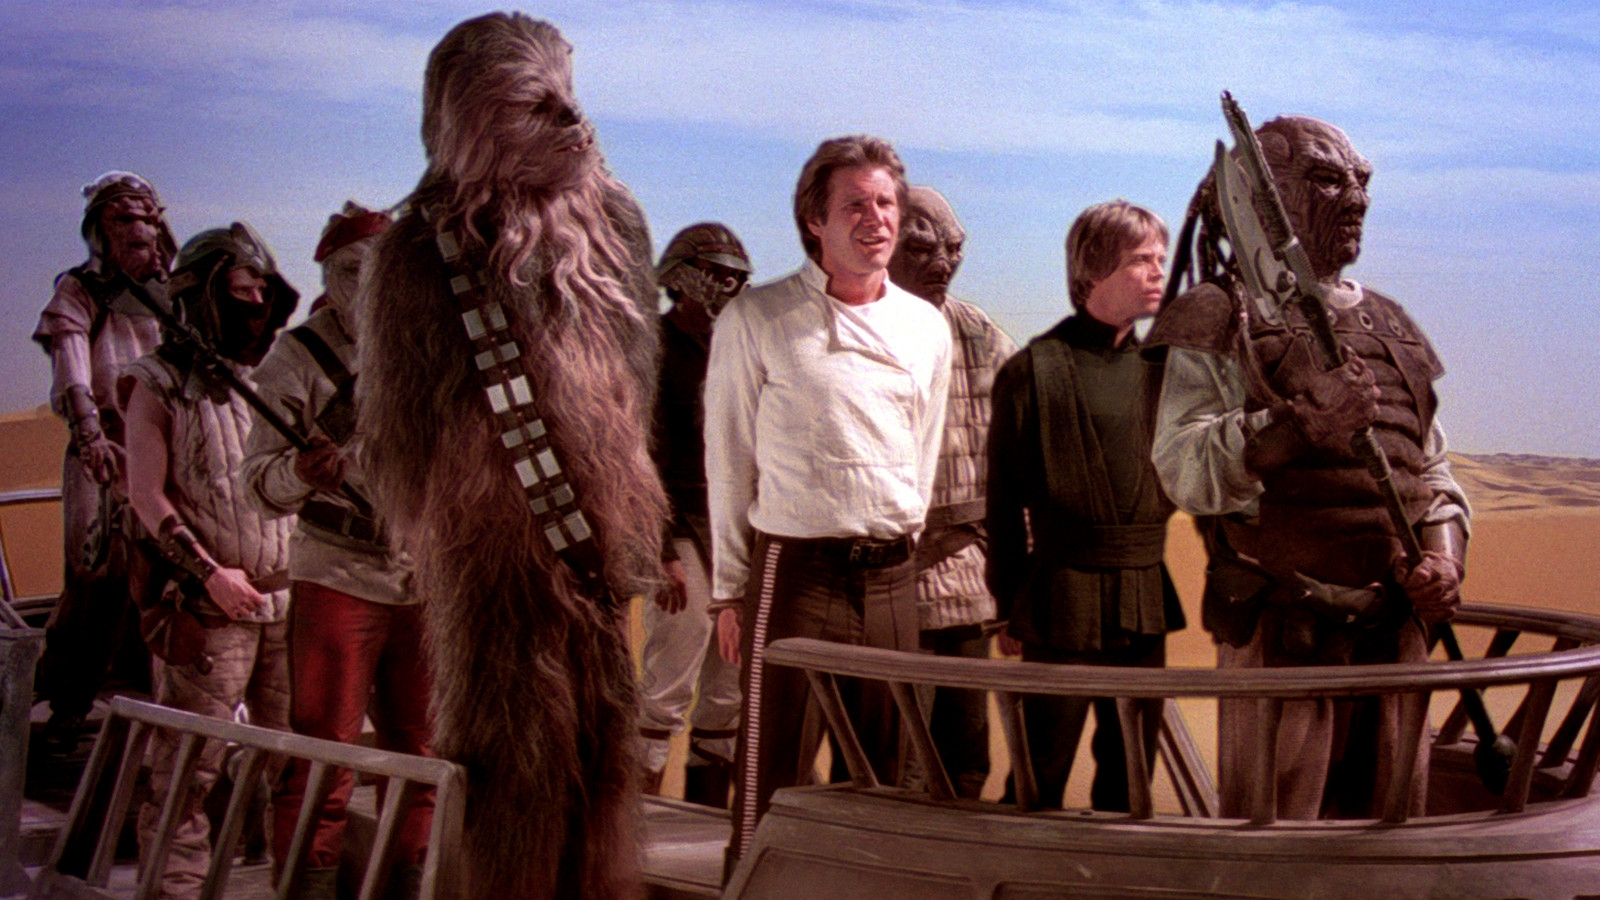 #38) Return of the Jedi (-7) - (1983 - dir. Richard Marquand)